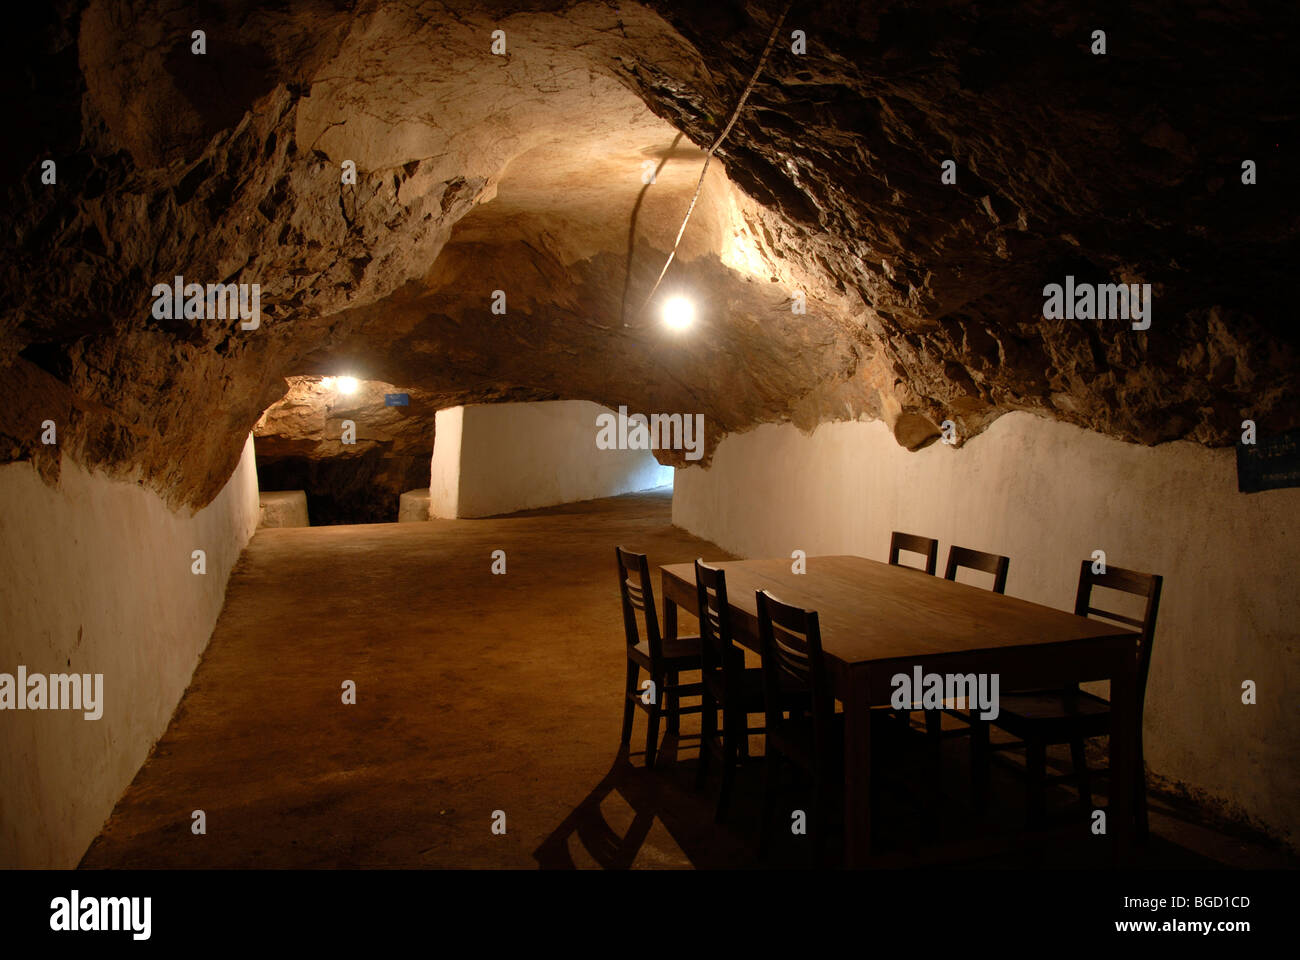 History, sparsely furnished cave of the Communist Pathet Lao resistance fighters, table and chairs, Tham Than Kaysone - Stock Image